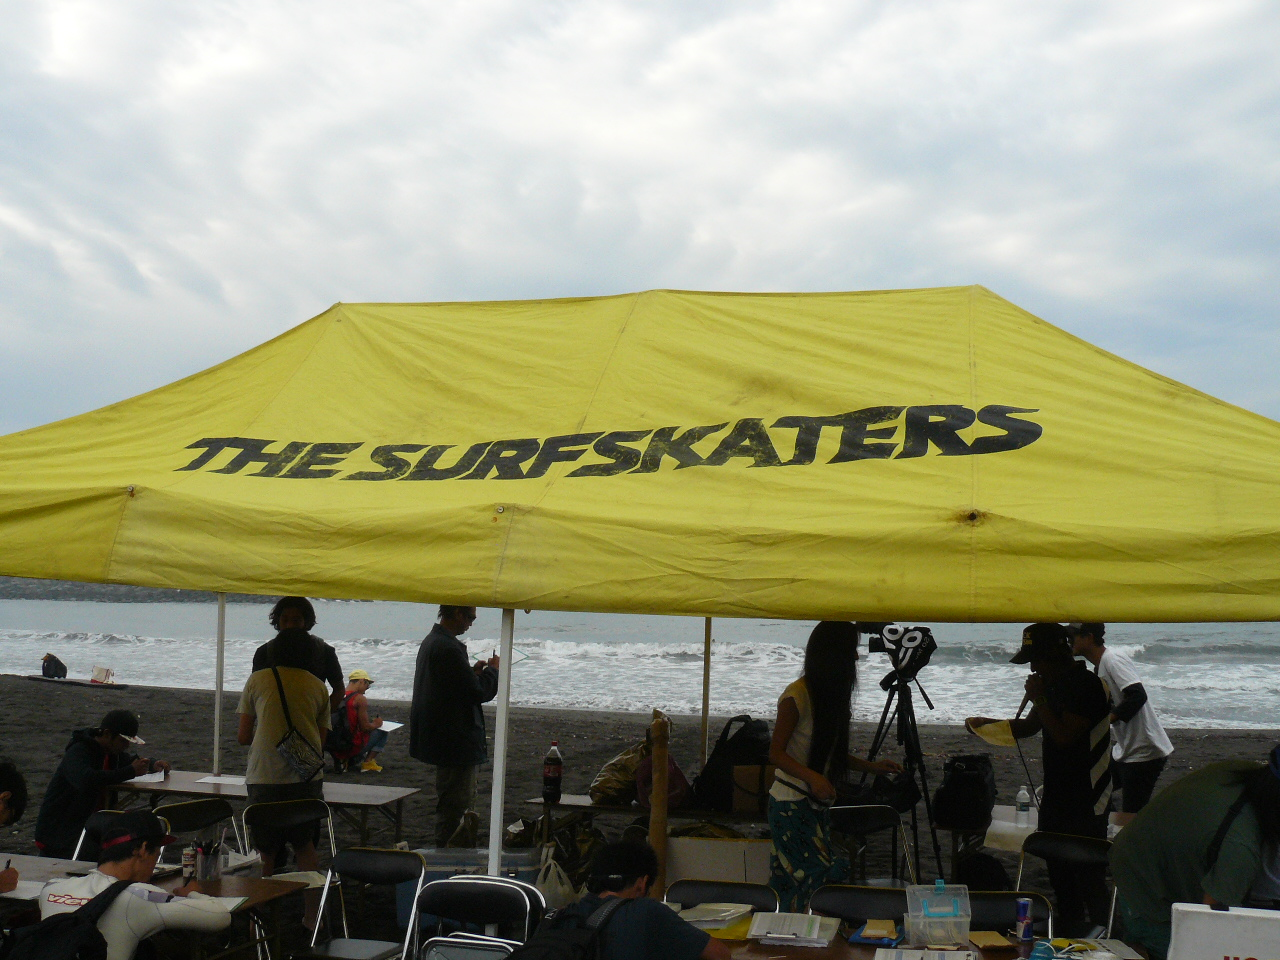 The SurfsKaters in 茅ヶ崎